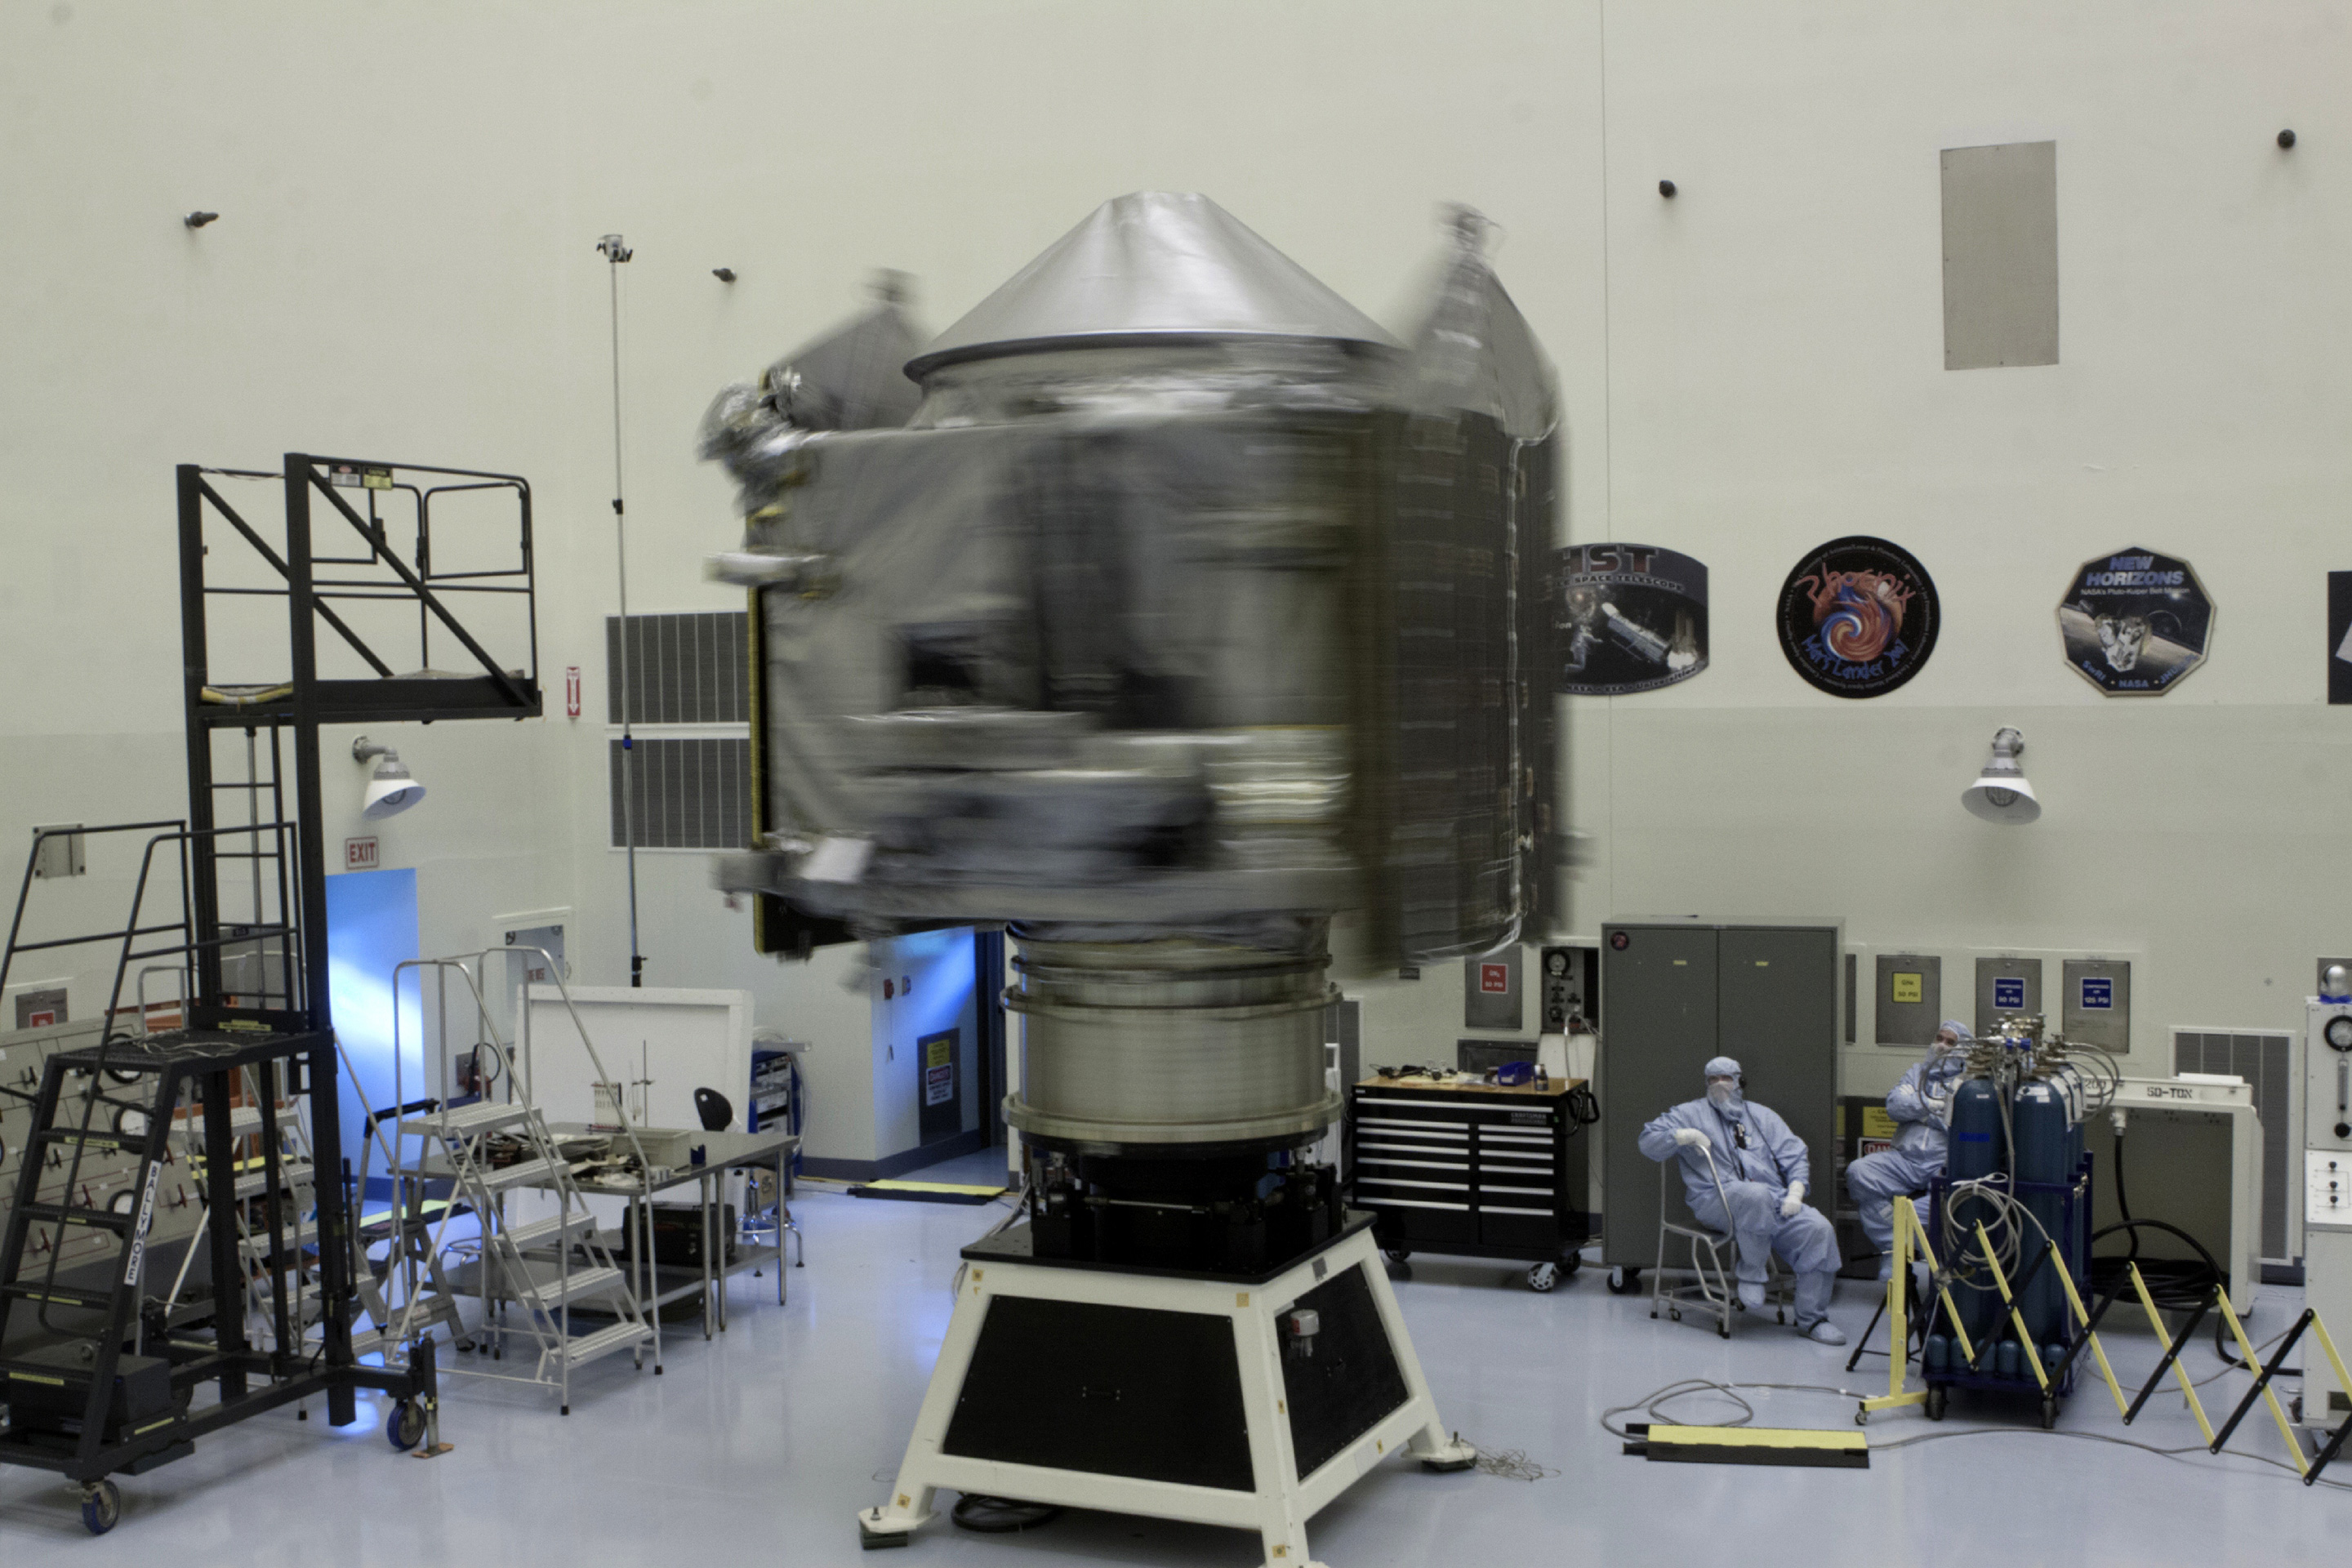 Inside the Payload Hazardous Servicing Facility at Kennedy Space Center in Florida, engineers and technicians perform a spin test of the MAVEN spacecraft. The operation is designed to verify that MAVEN is properly balanced as it spins during the initial mission activities. Photo: NASA/Kim Shiflett